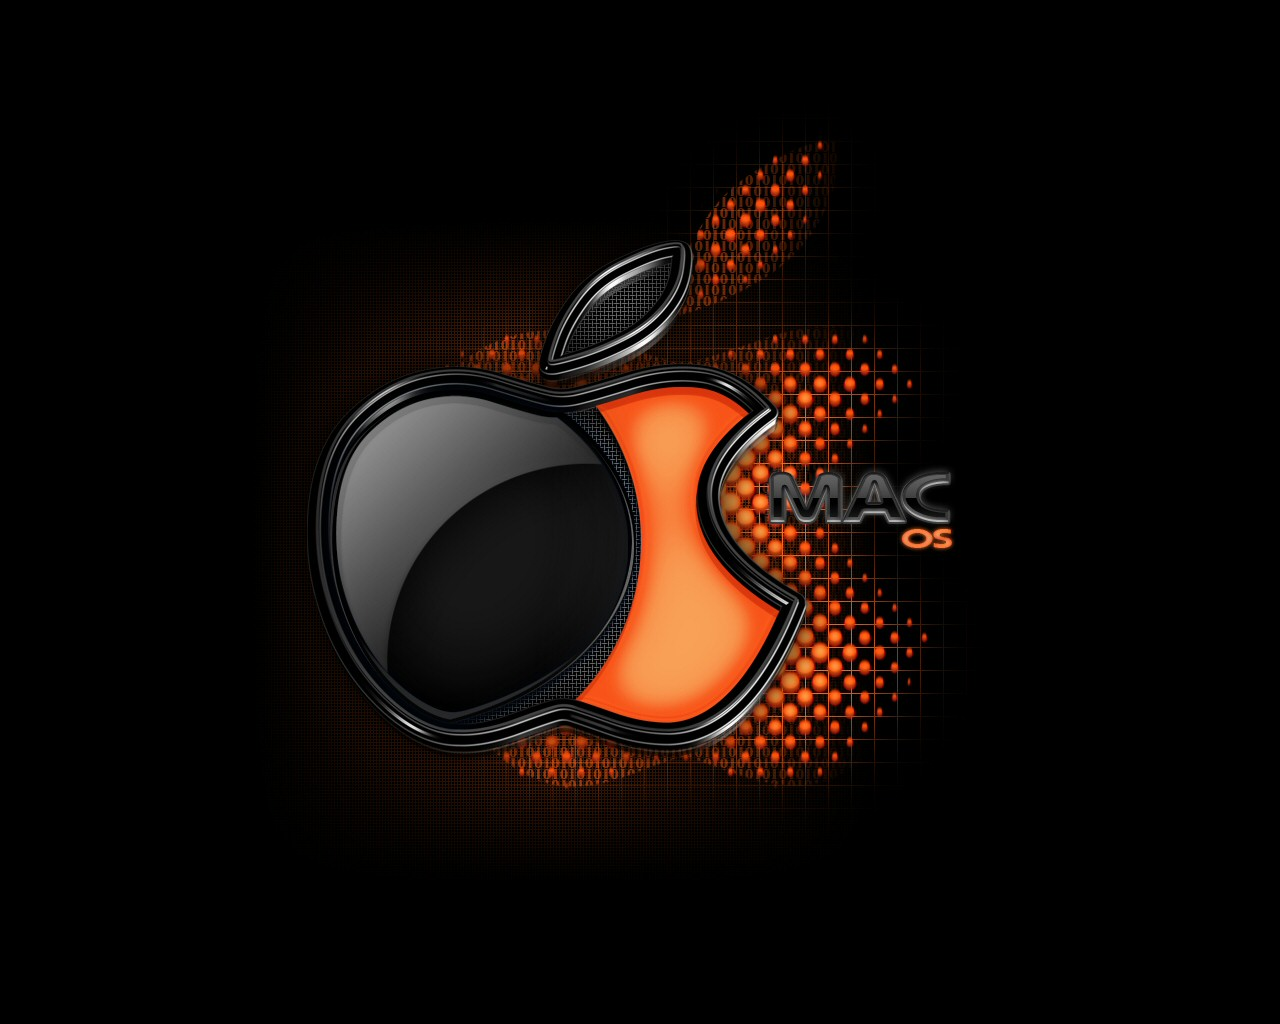 http://1.bp.blogspot.com/-gY0SrwrDgn8/T3Cq0gkLA-I/AAAAAAAACWU/BYWH9dzxu7Y/s1600/hd-apple-mac-wallpapers-1.jpg